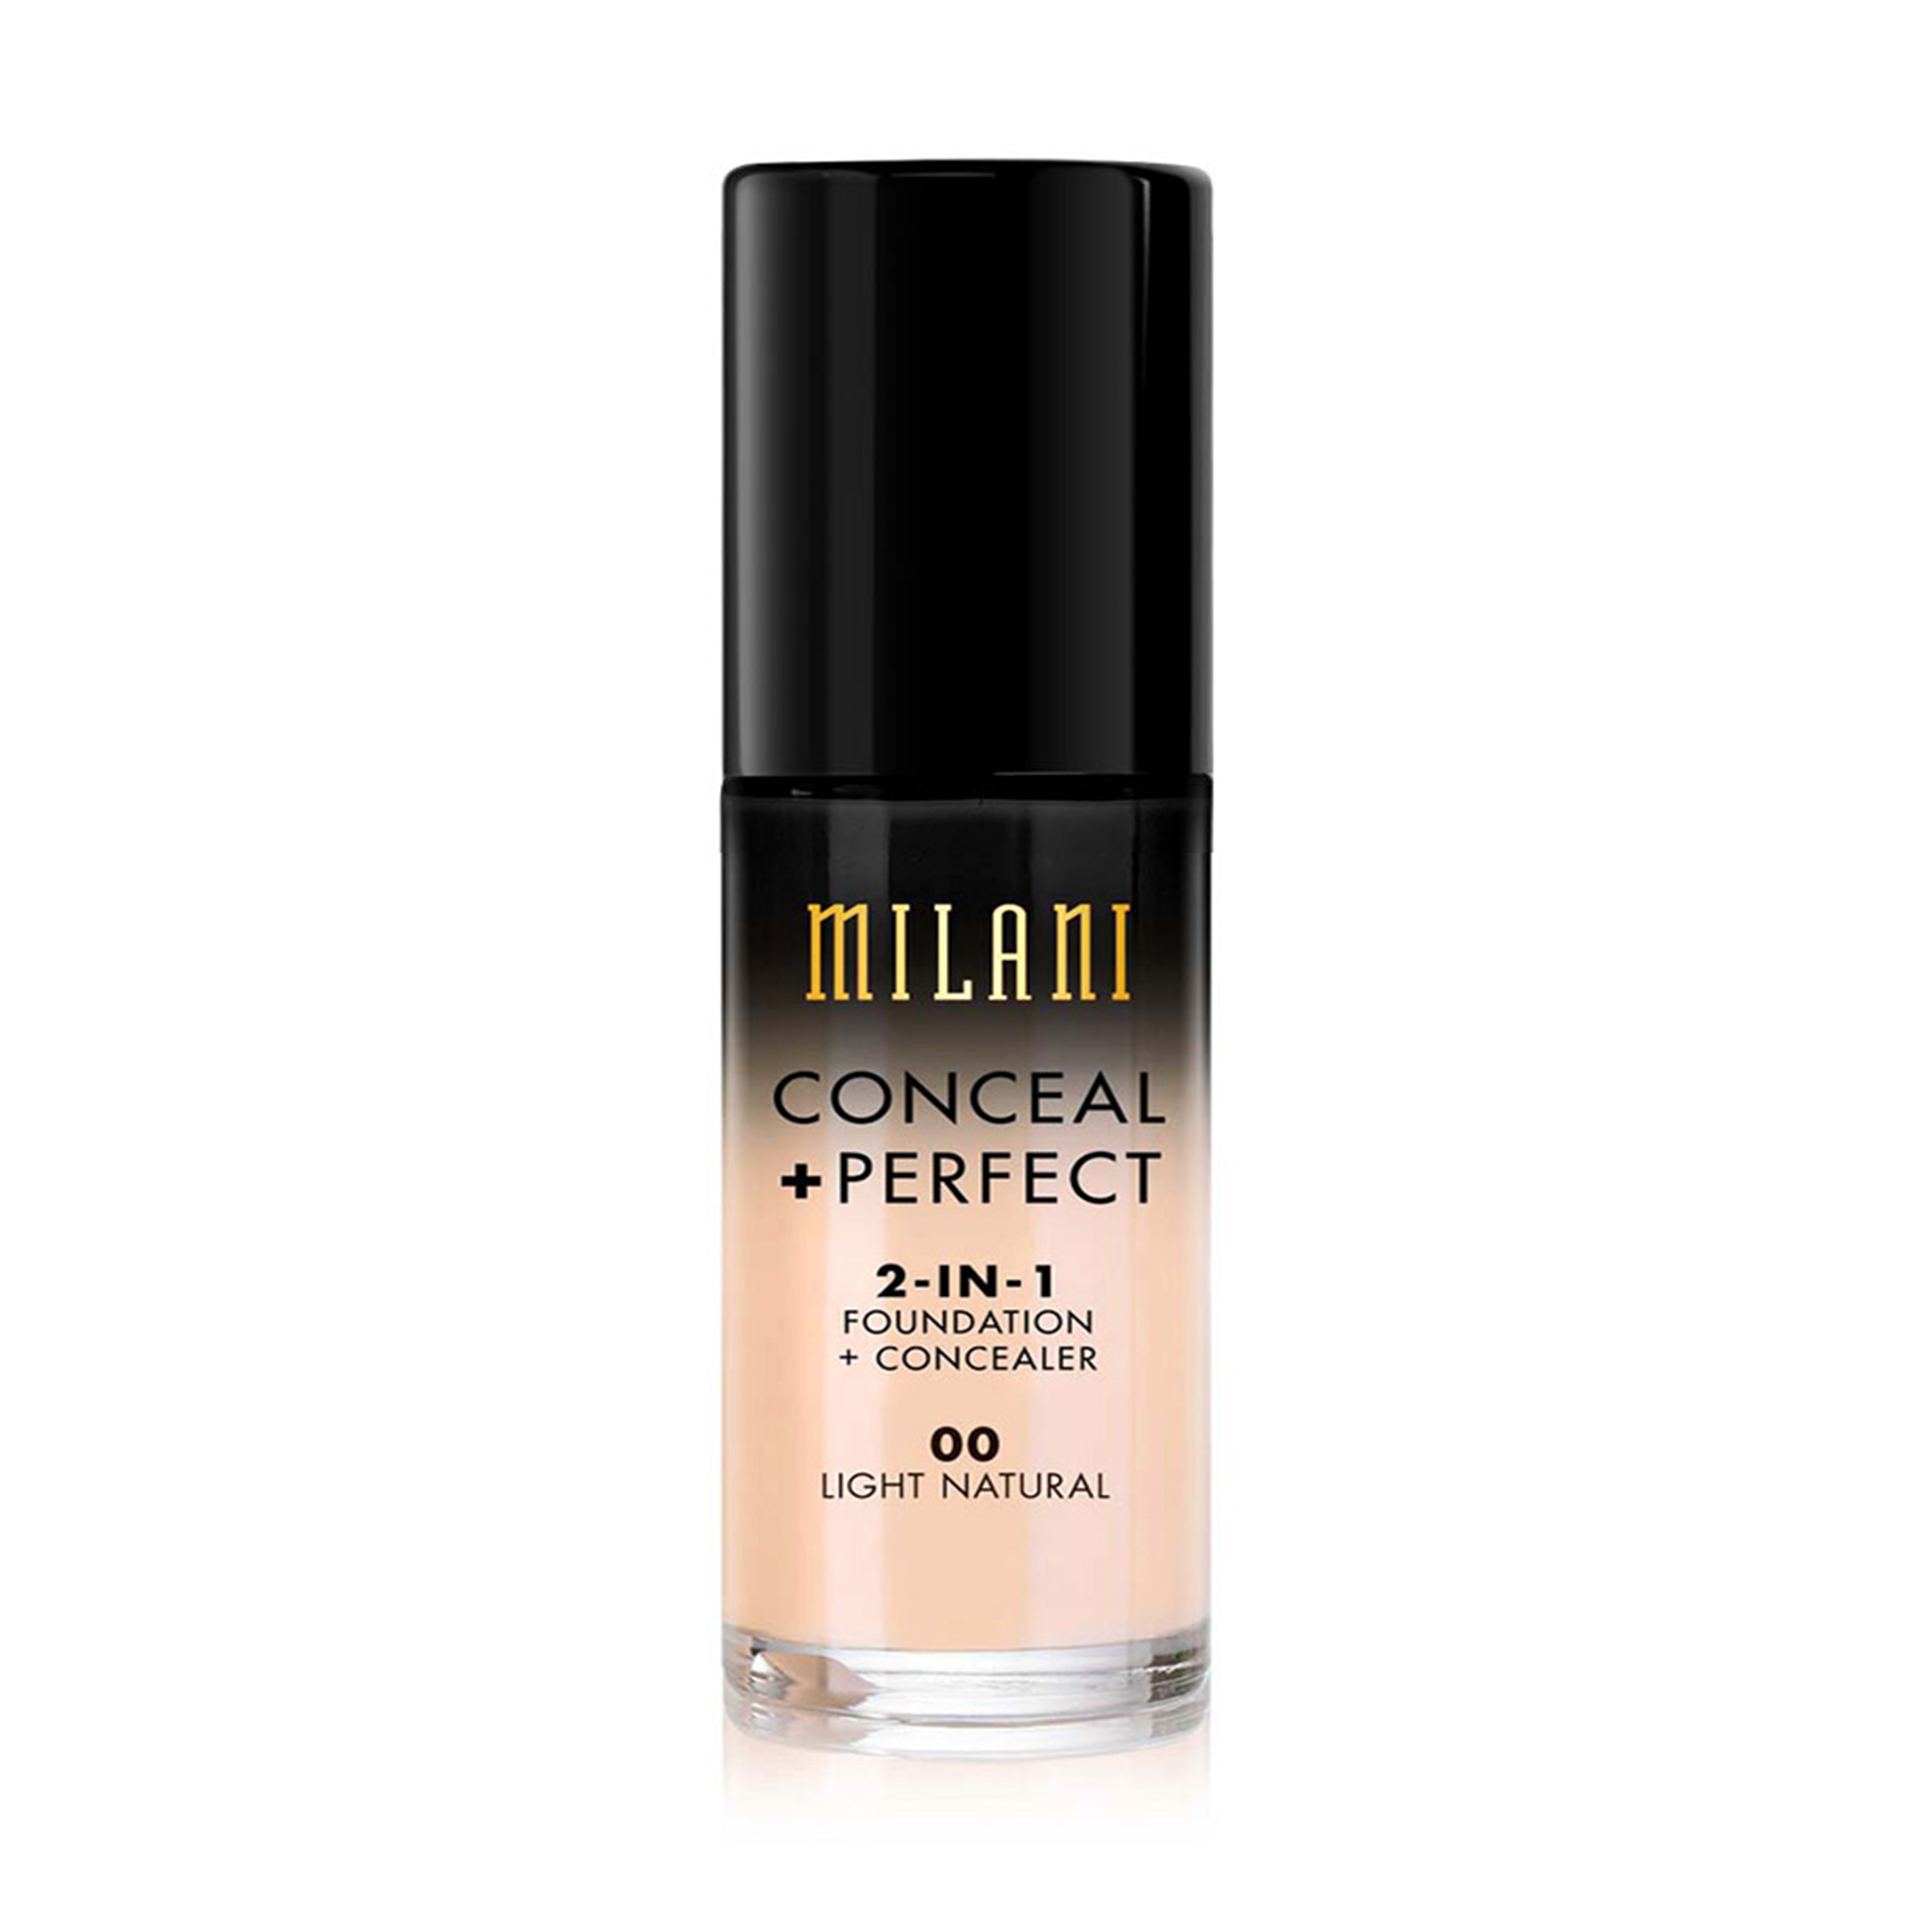 Conceal + Perfect Liquid Foundation 00 Light Natural